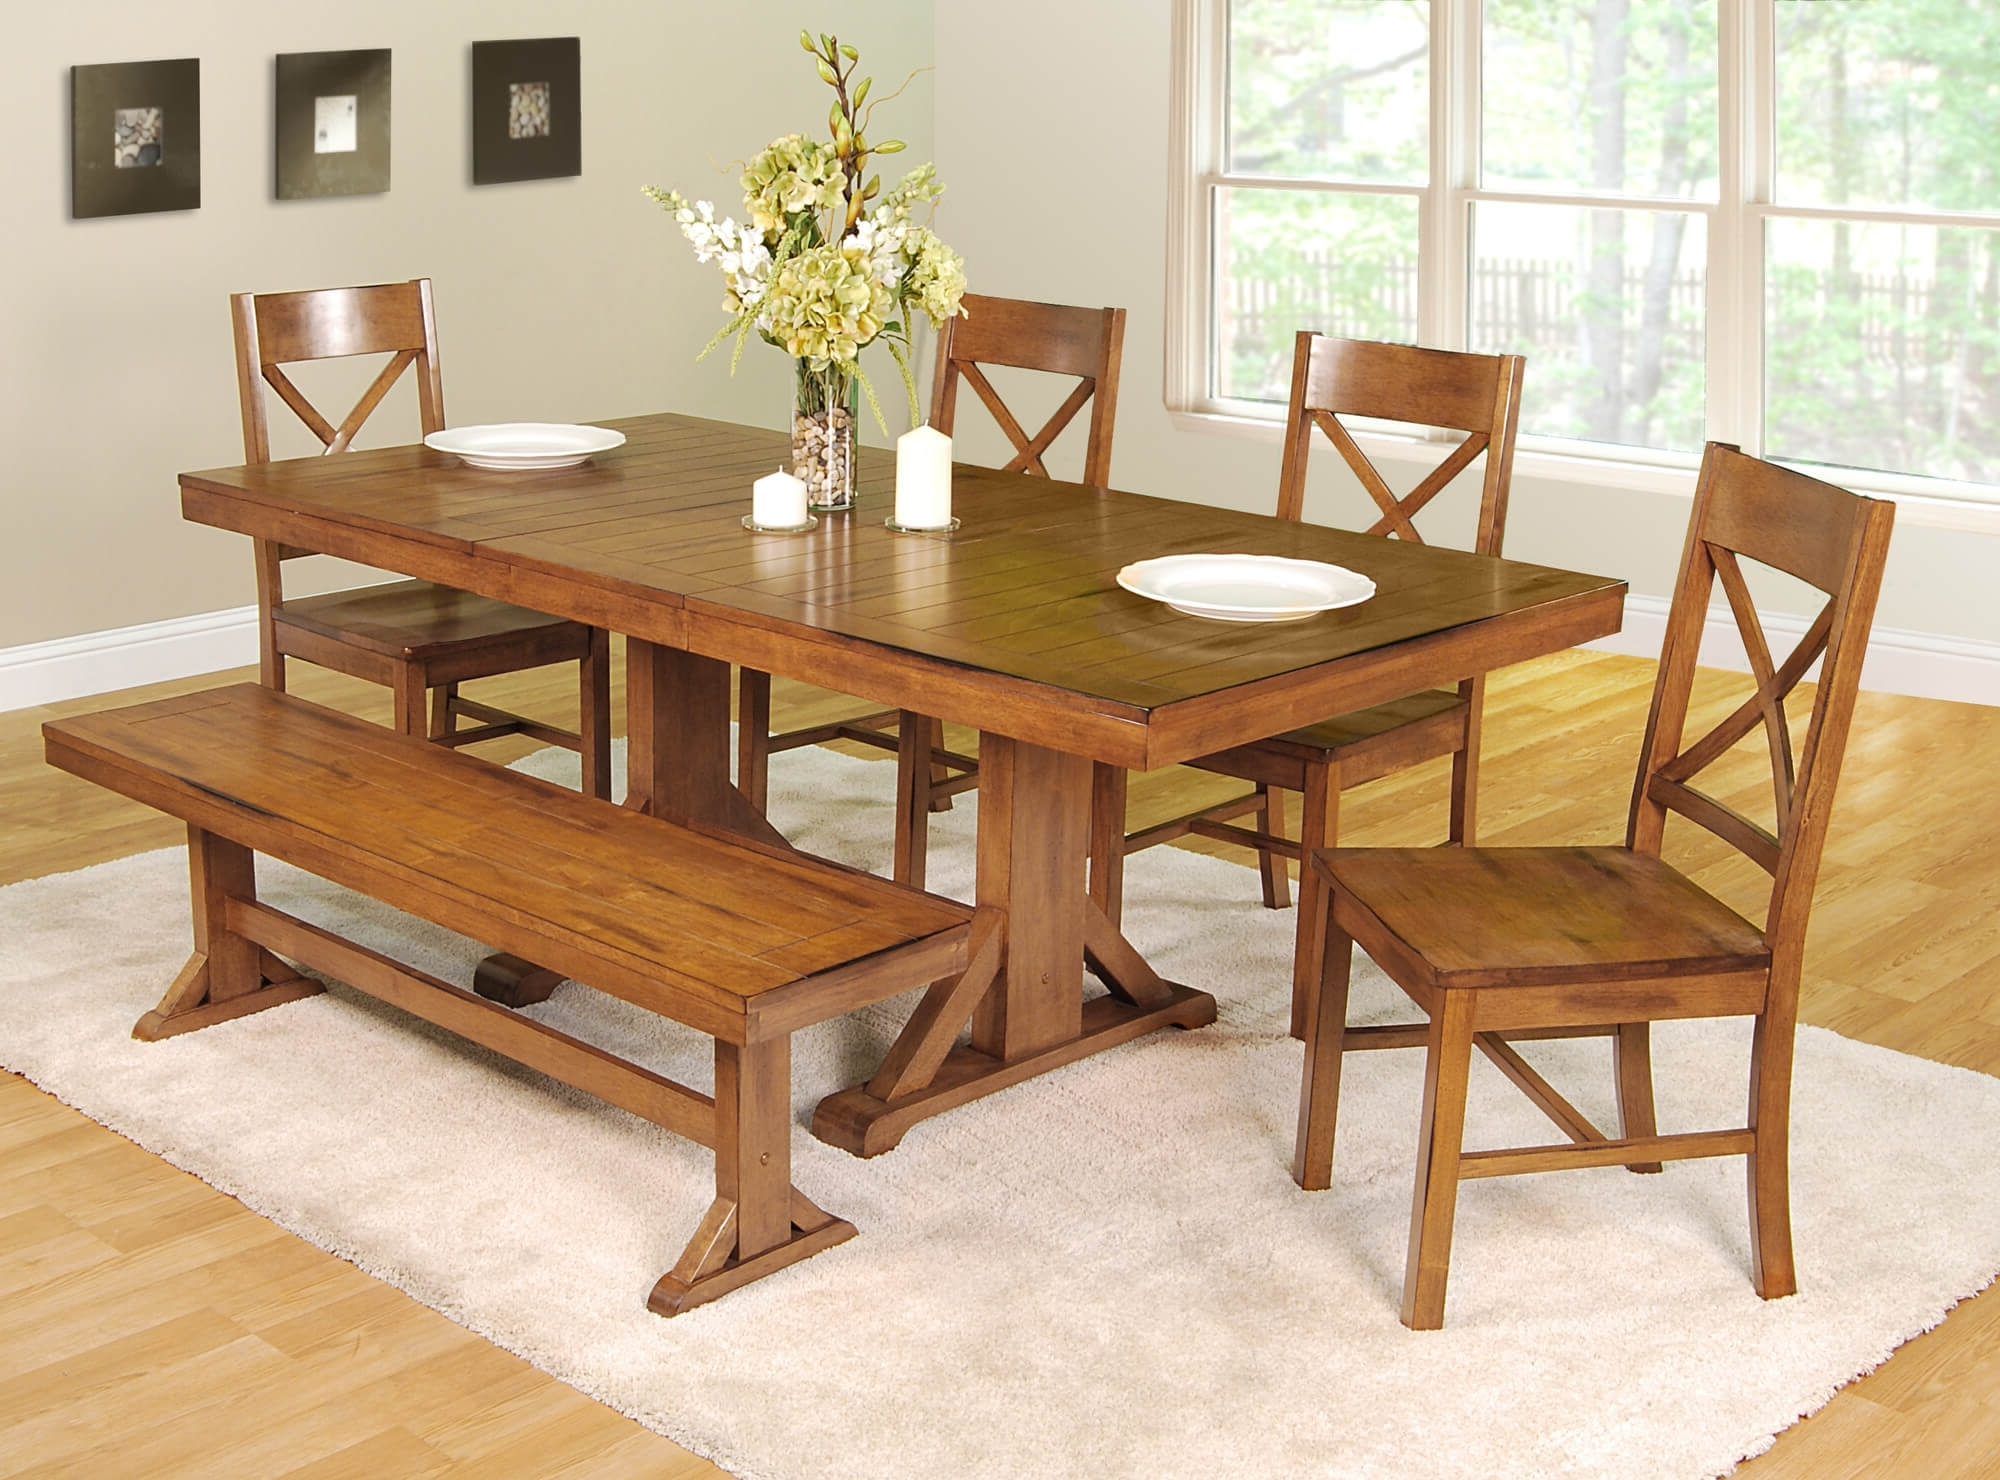 Indoor Picnic Style Dining Tables Intended For Favorite 26 Dining Room Sets (Big And Small) With Bench Seating (2018) (View 6 of 25)